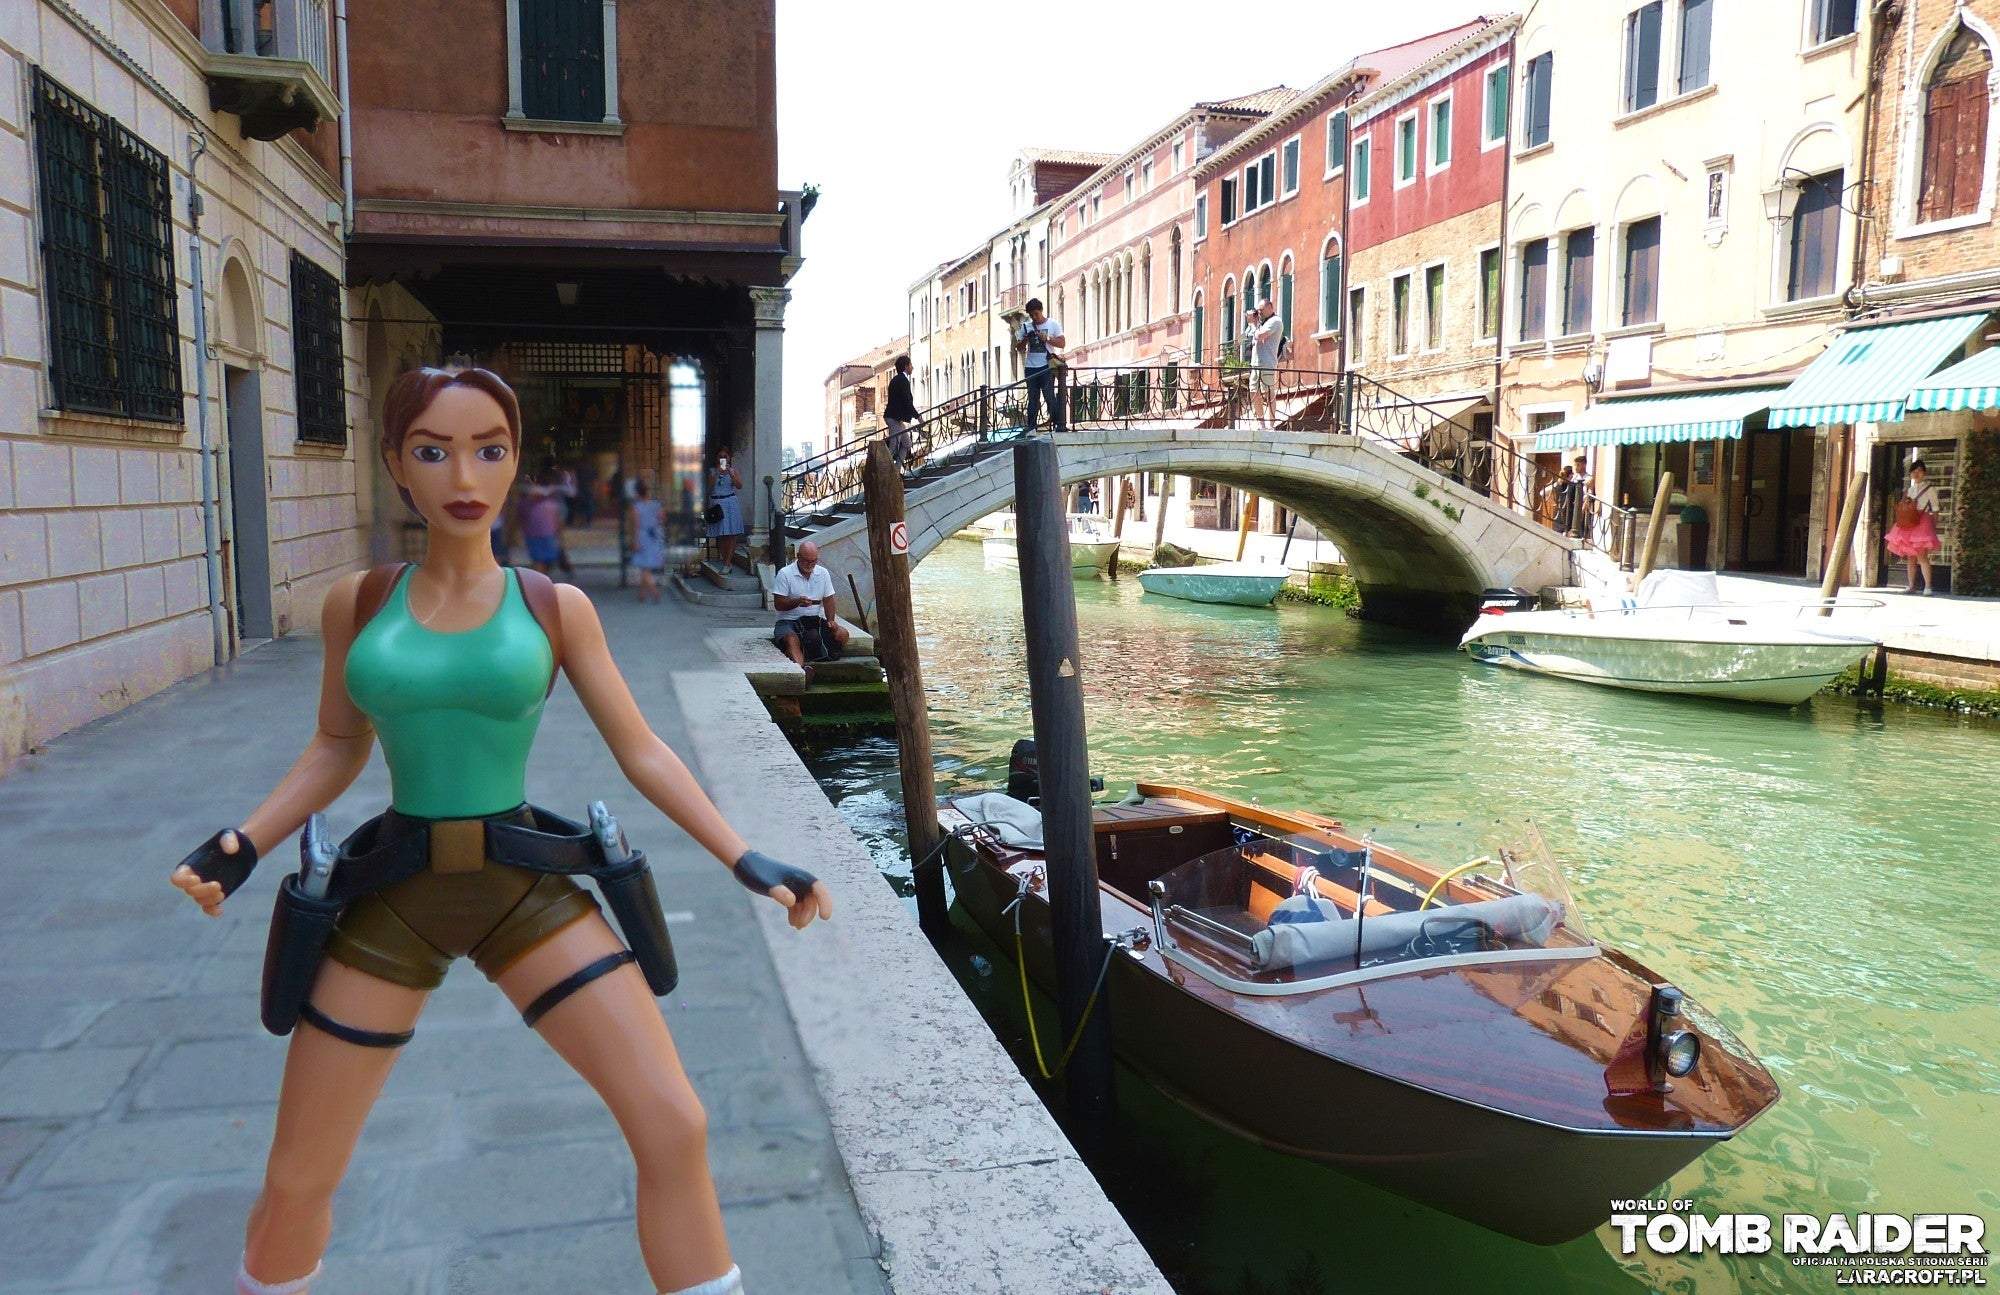 A photograph of a Lara Croft figure in front of a speedboat in Venice